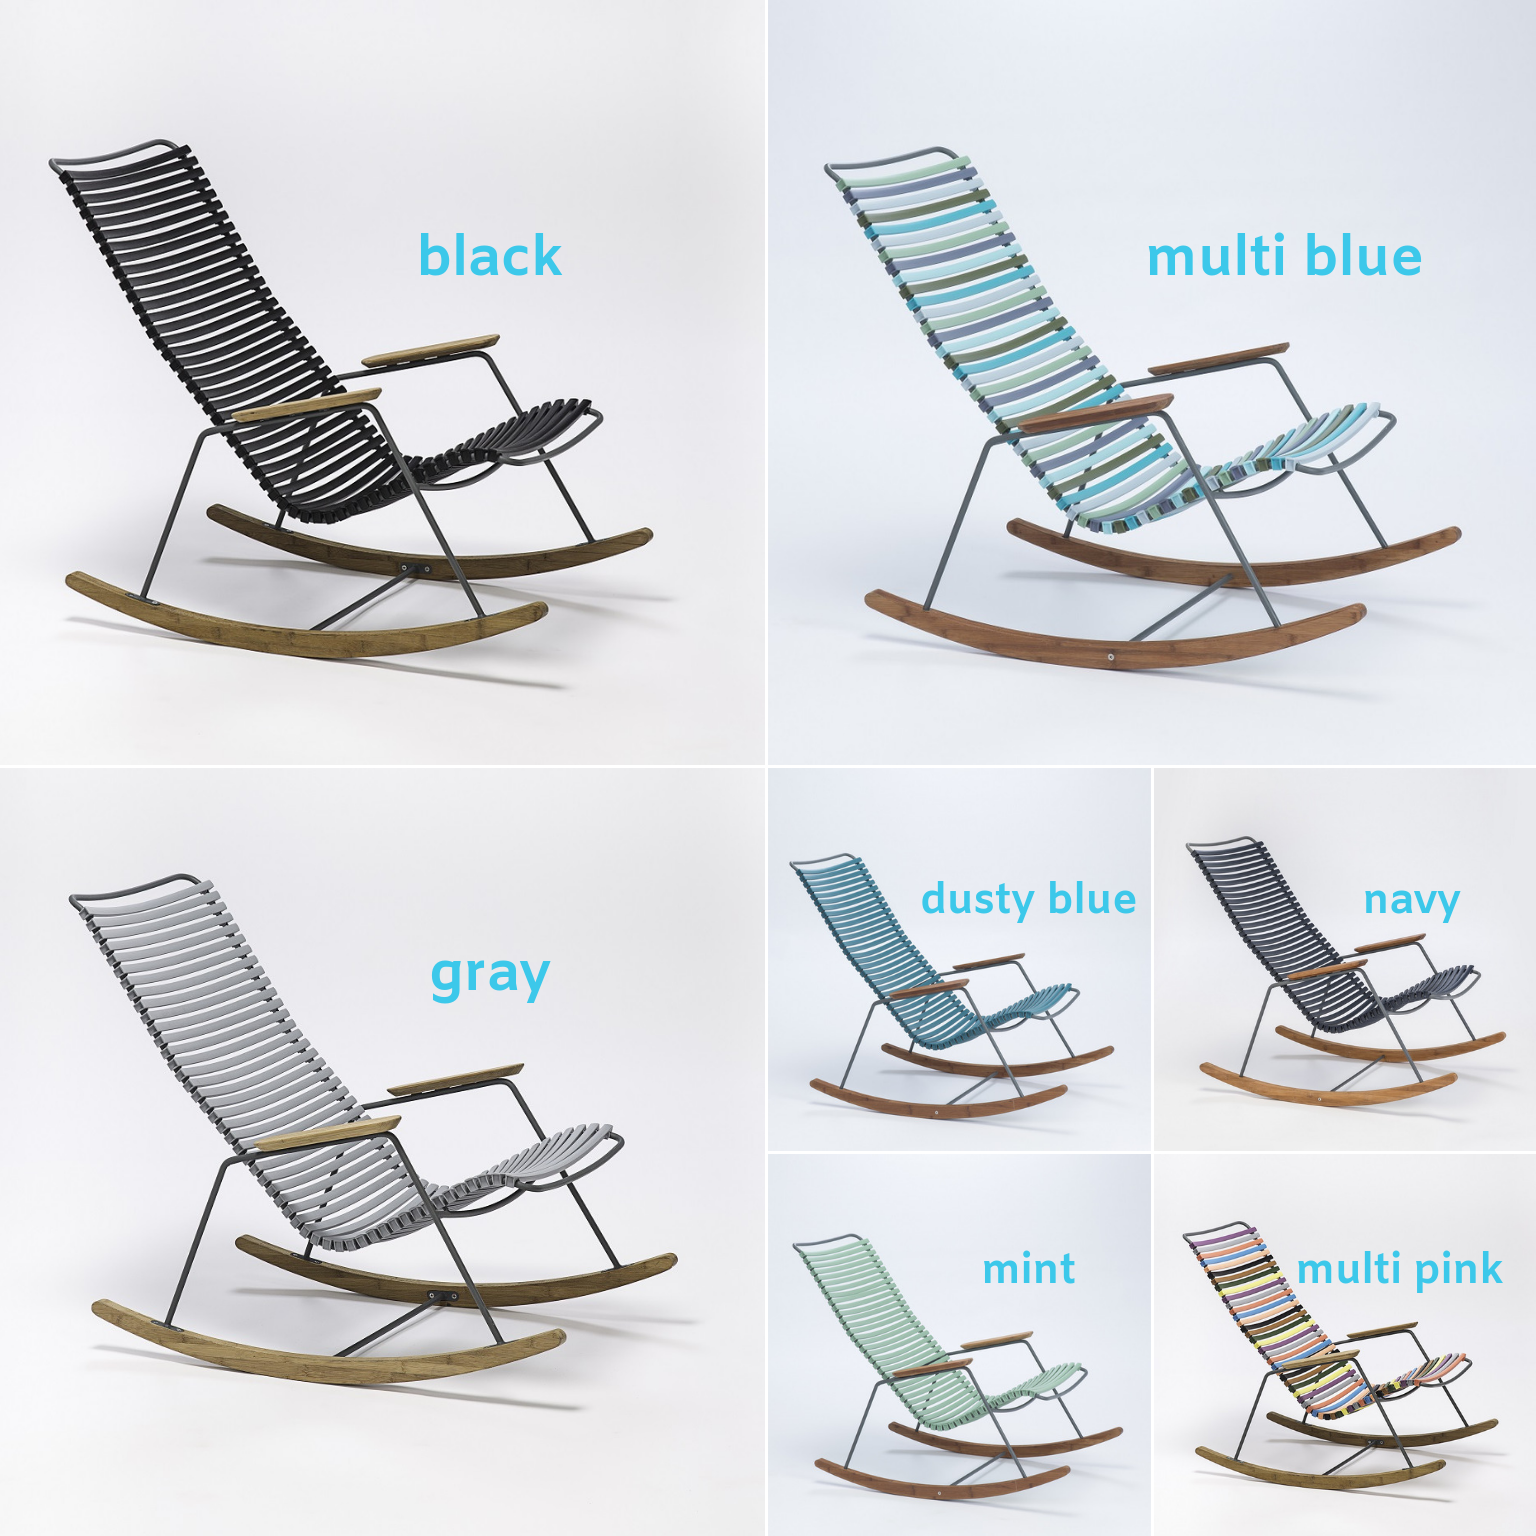 Playnk Rocking Chair Color Options